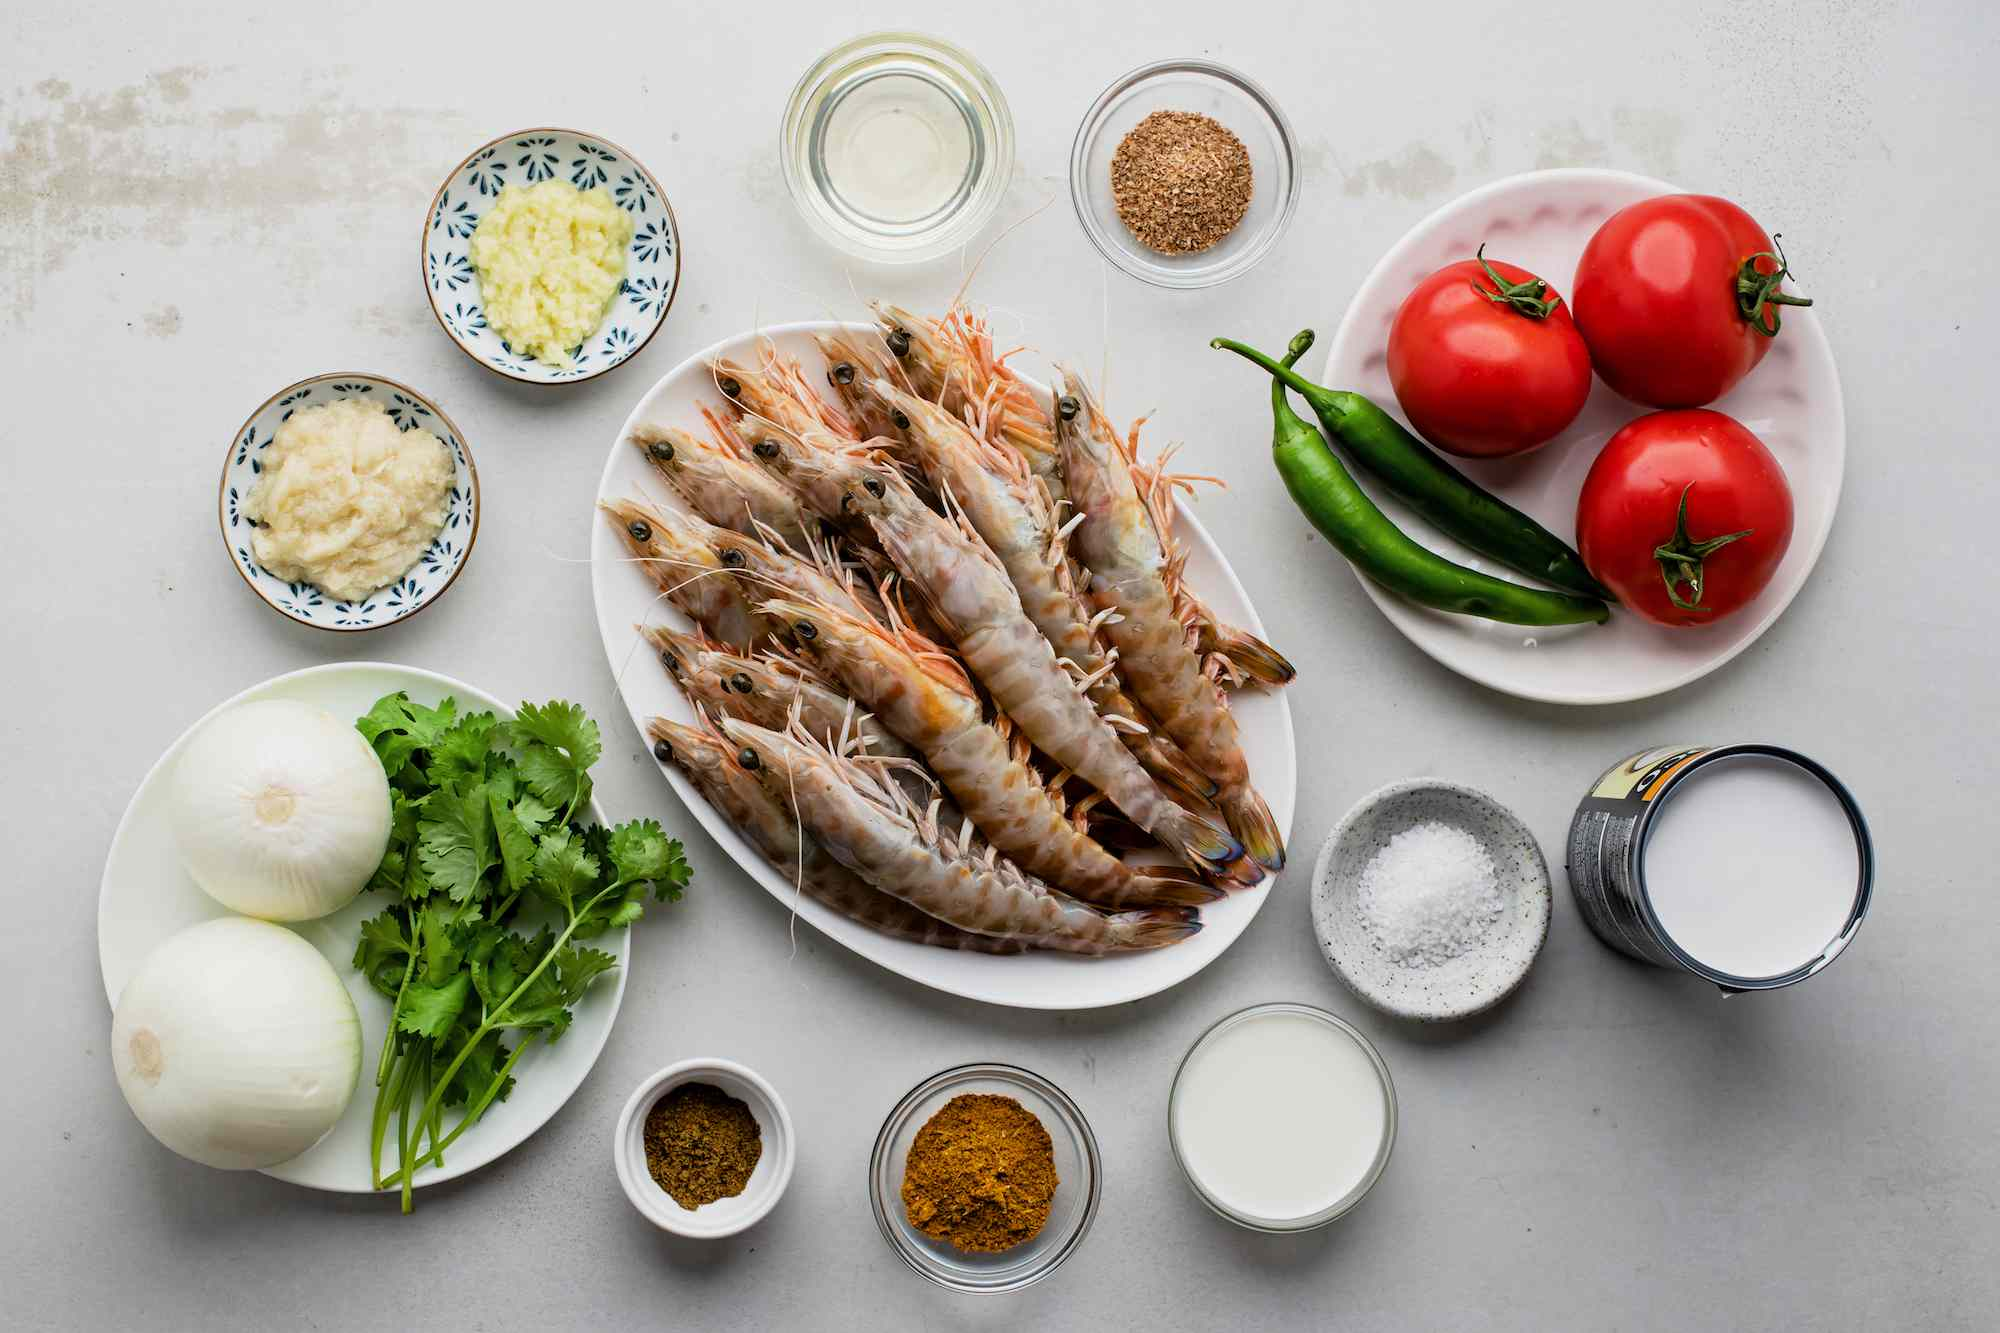 Ingredients for creamy prawn curry